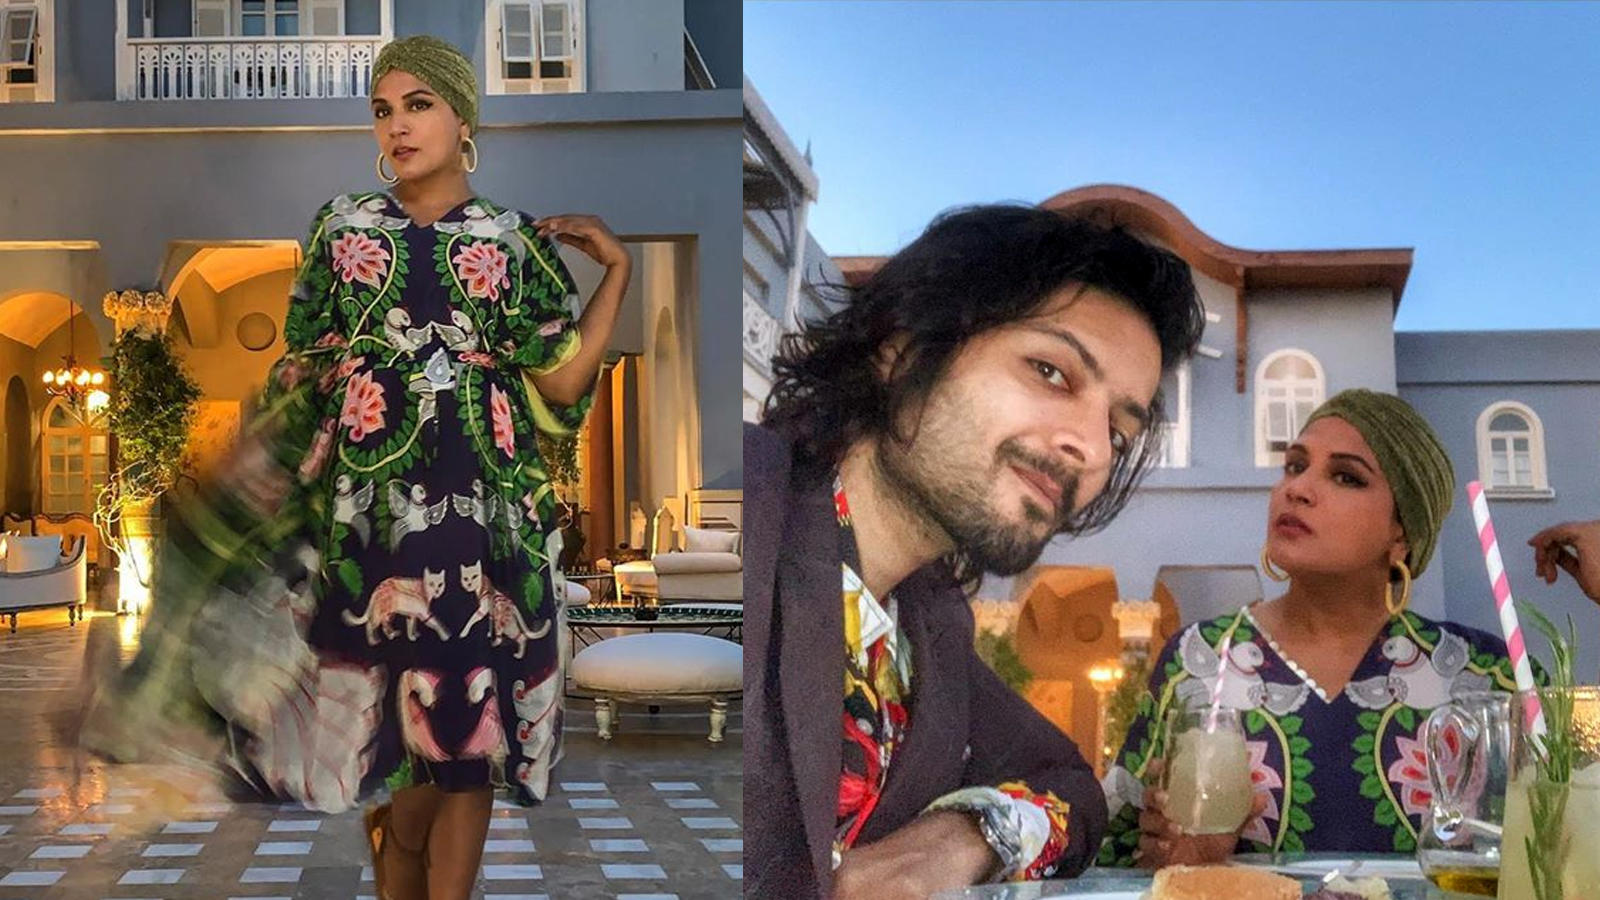 richa-chadha-shares-glimpses-of-her-date-night-with-beau-ali-fazal-from-egypt